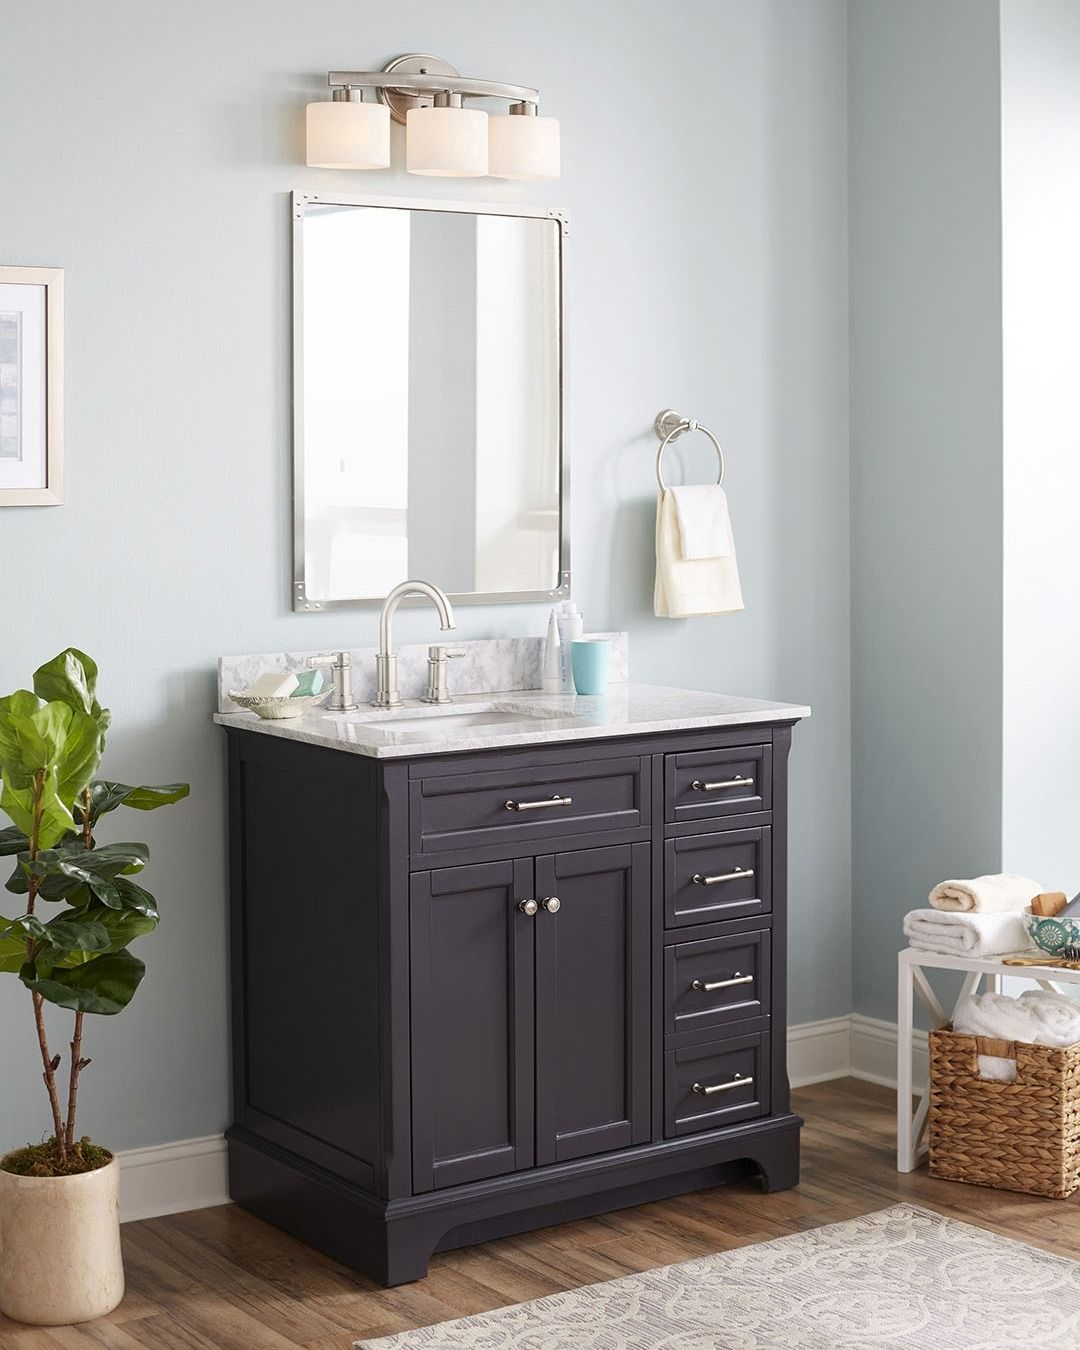 Upgrade Your Bath With A Stylish Vanity That Provides